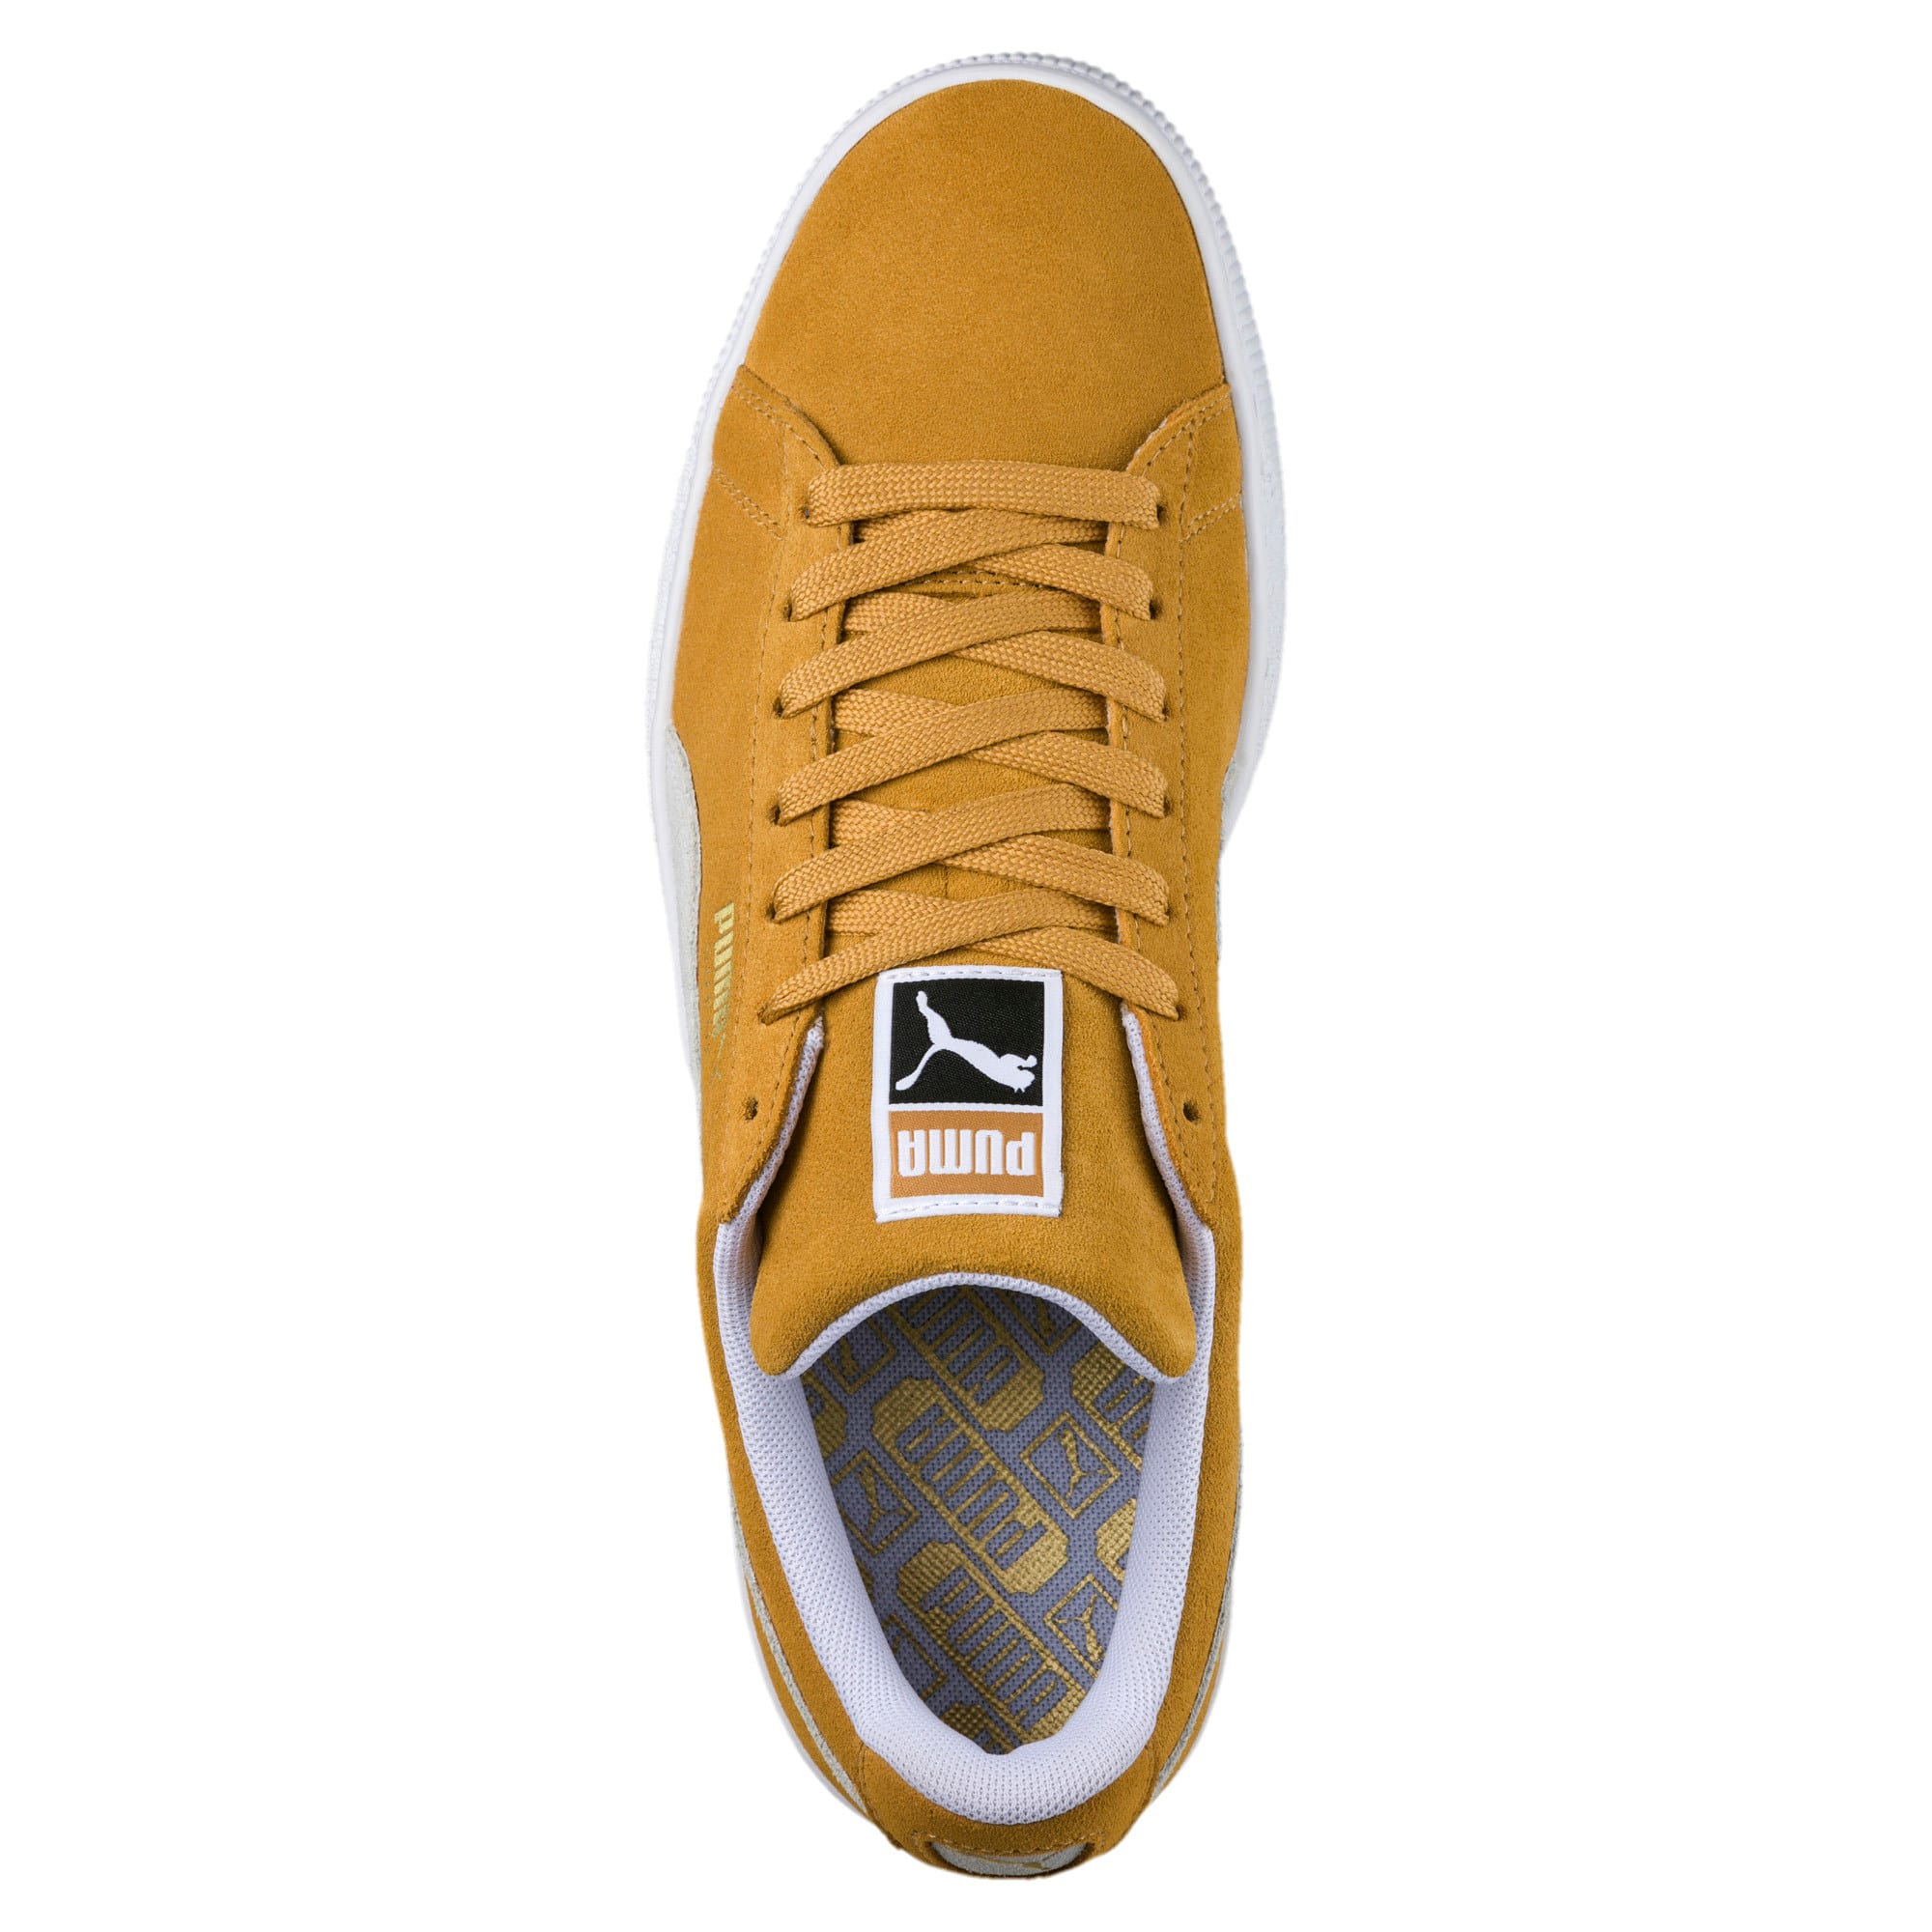 Thumbnail 5 of Suede Classic Trainers, Honey Mustard-Puma White, medium-IND